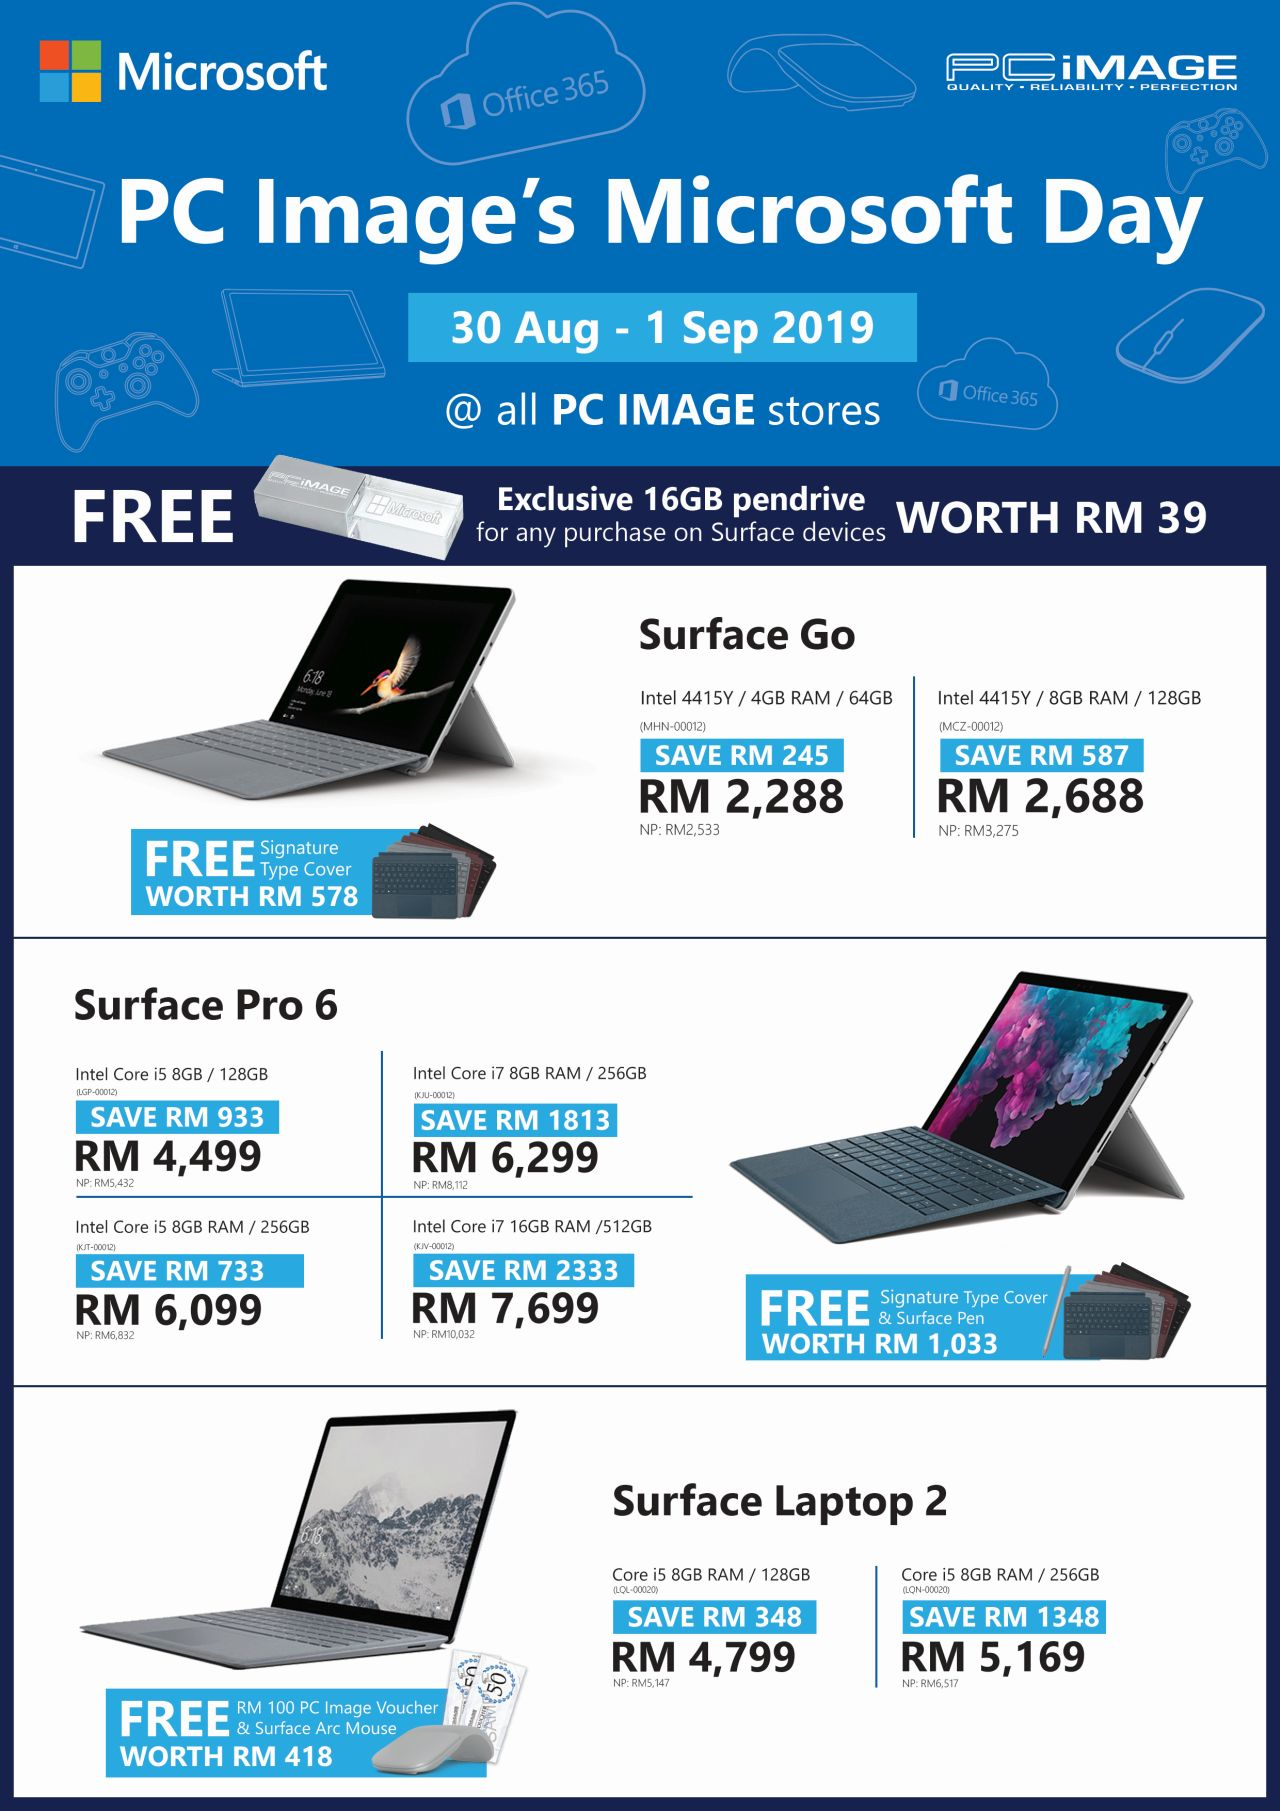 PC Image Microsoft Day 2019 Flyer